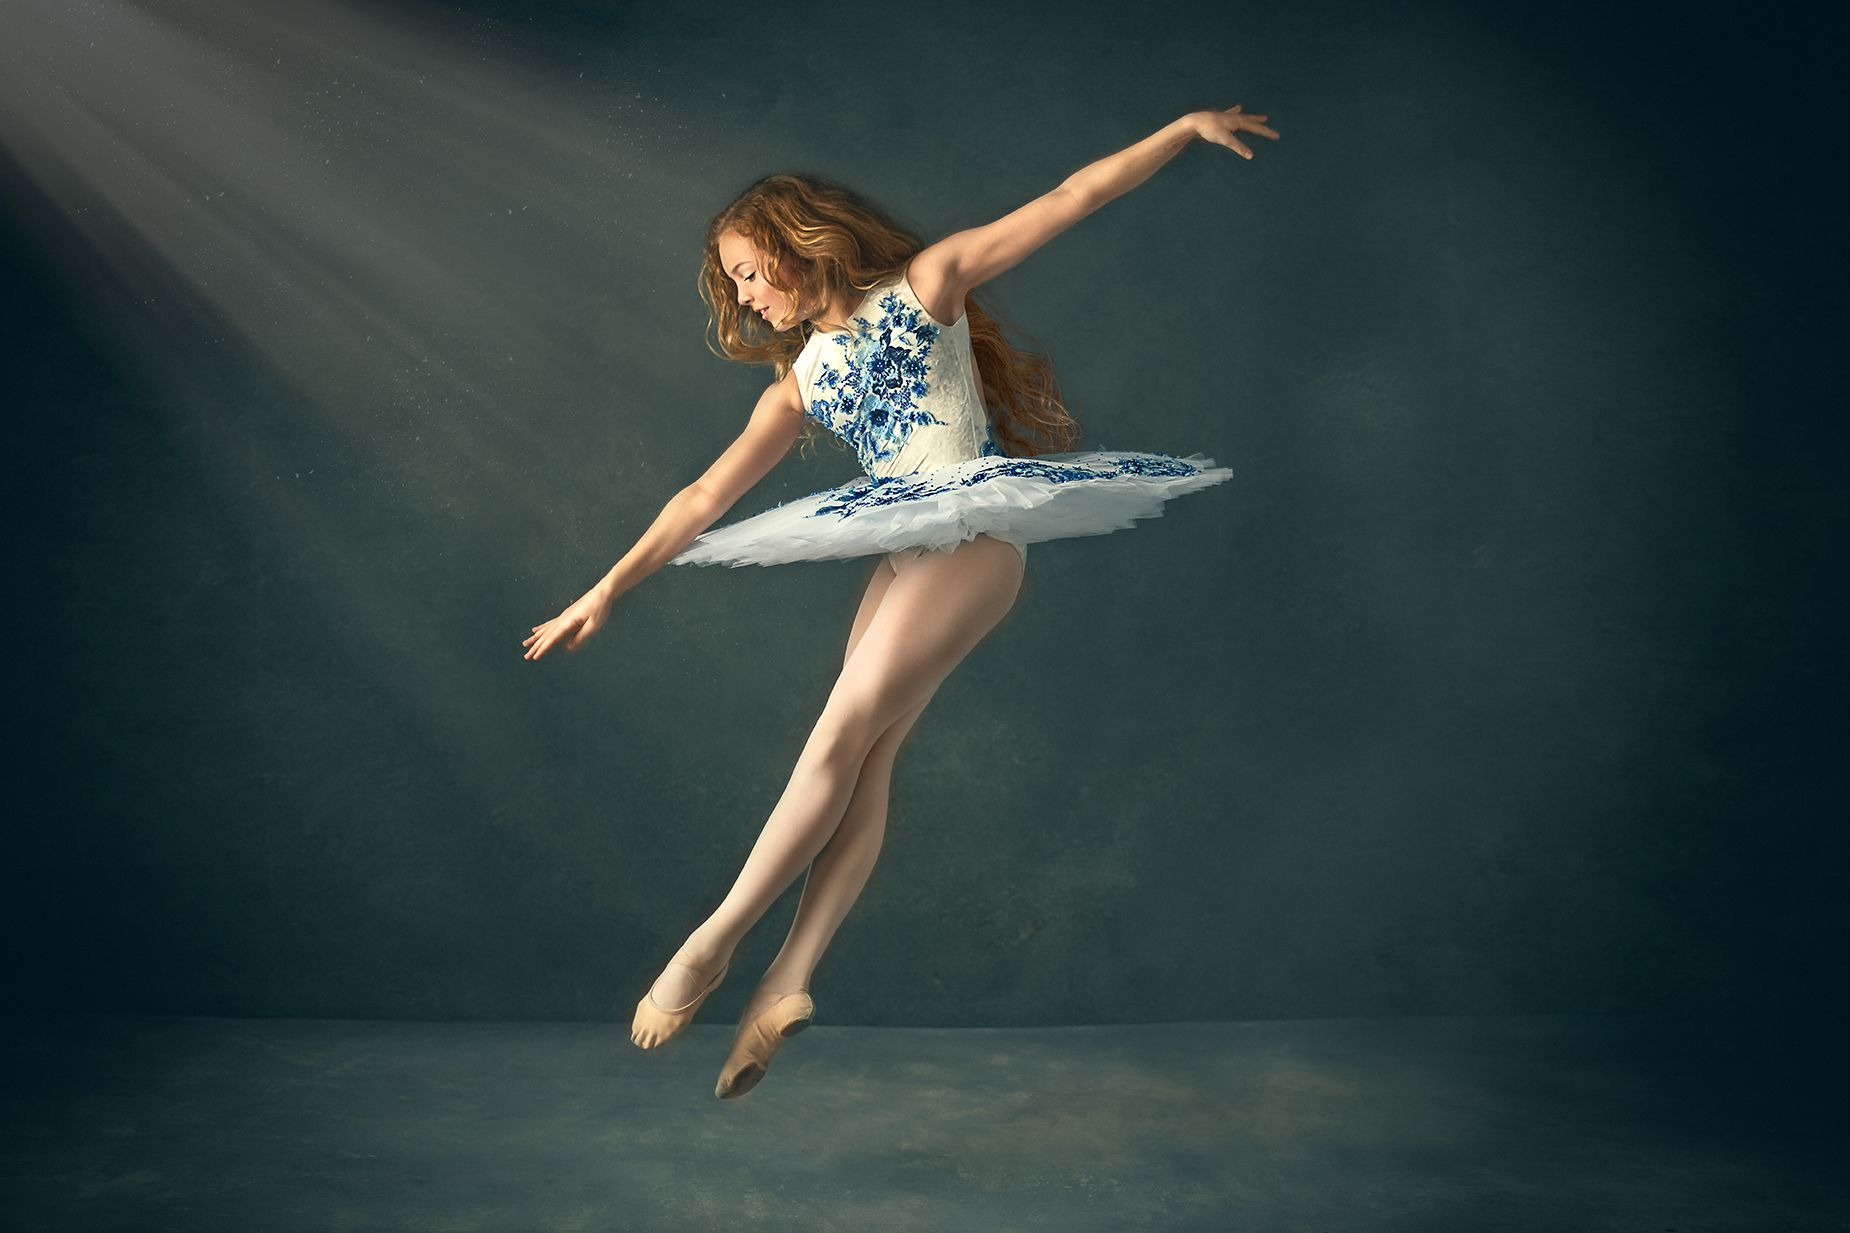 Dancer jumping in studio fine art session wearing tutu with beautiful lighting